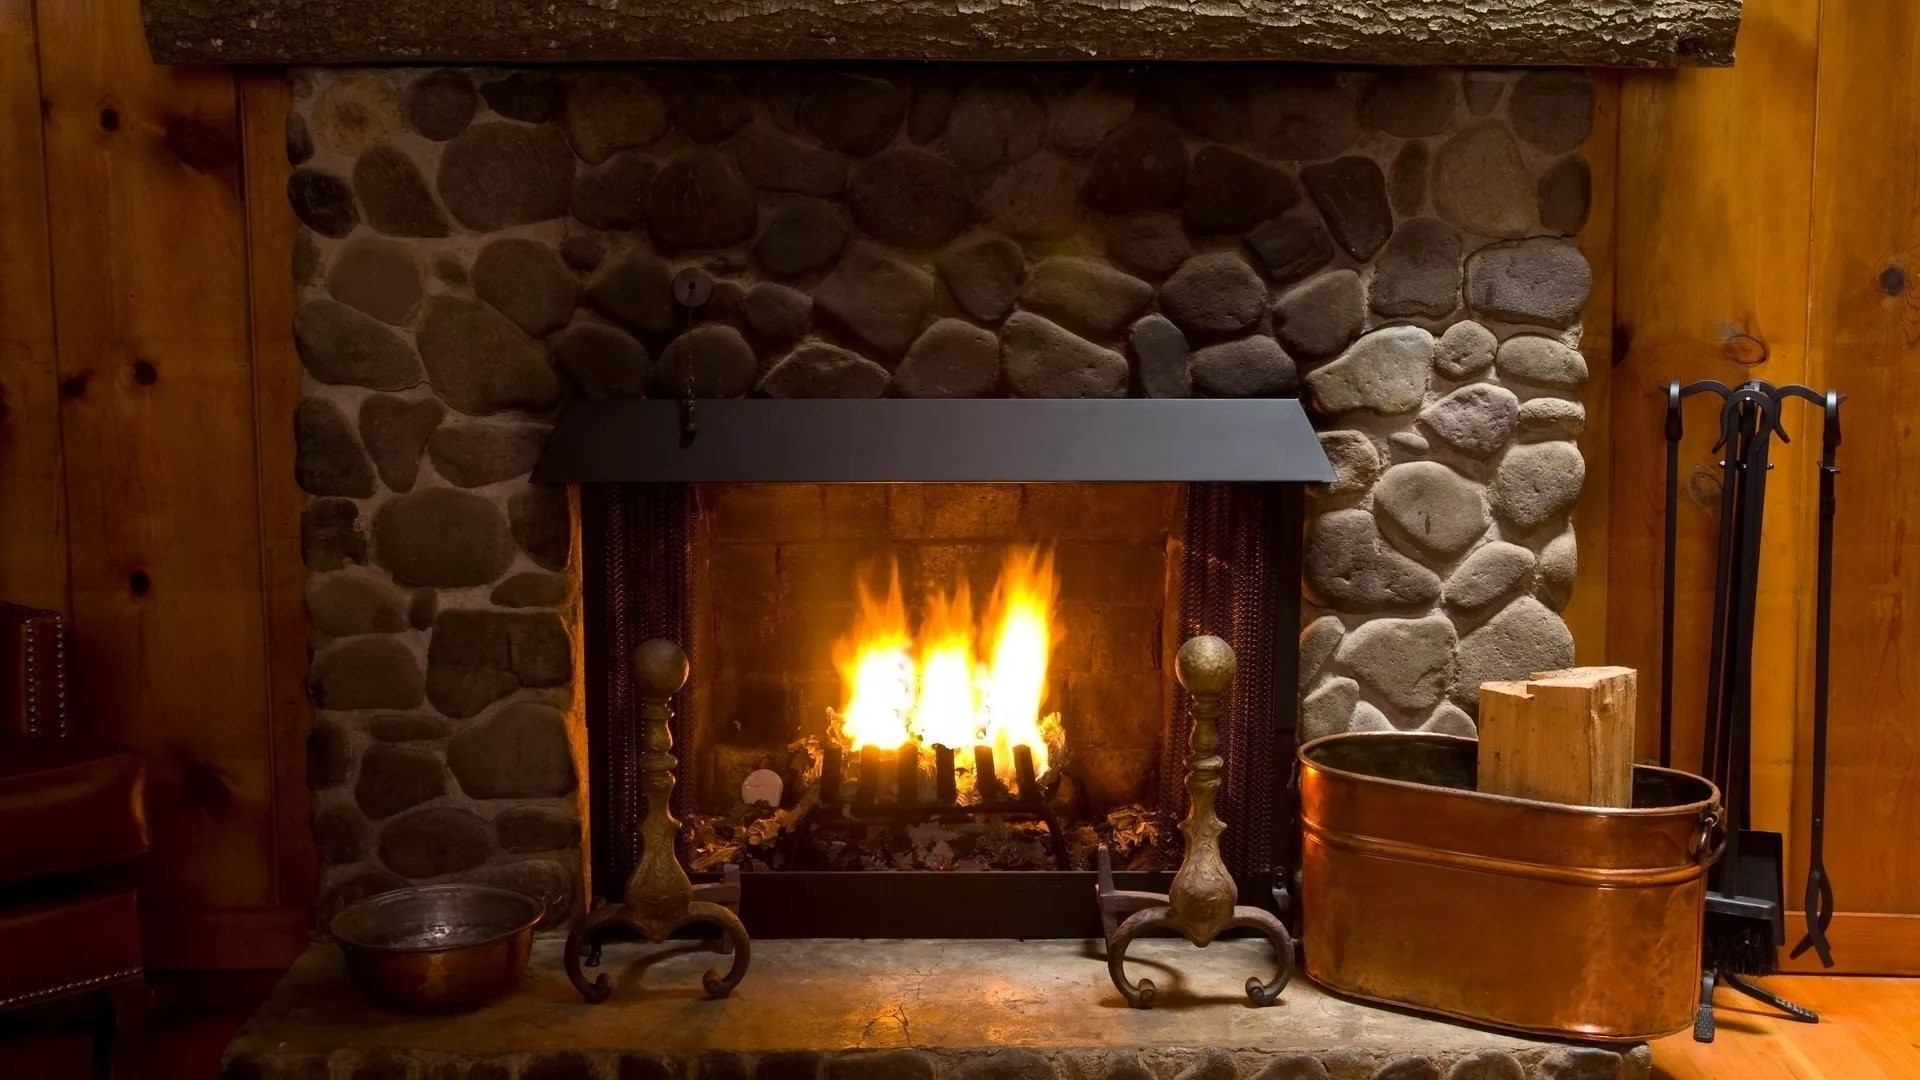 Res: 1920x1080, Fireplace